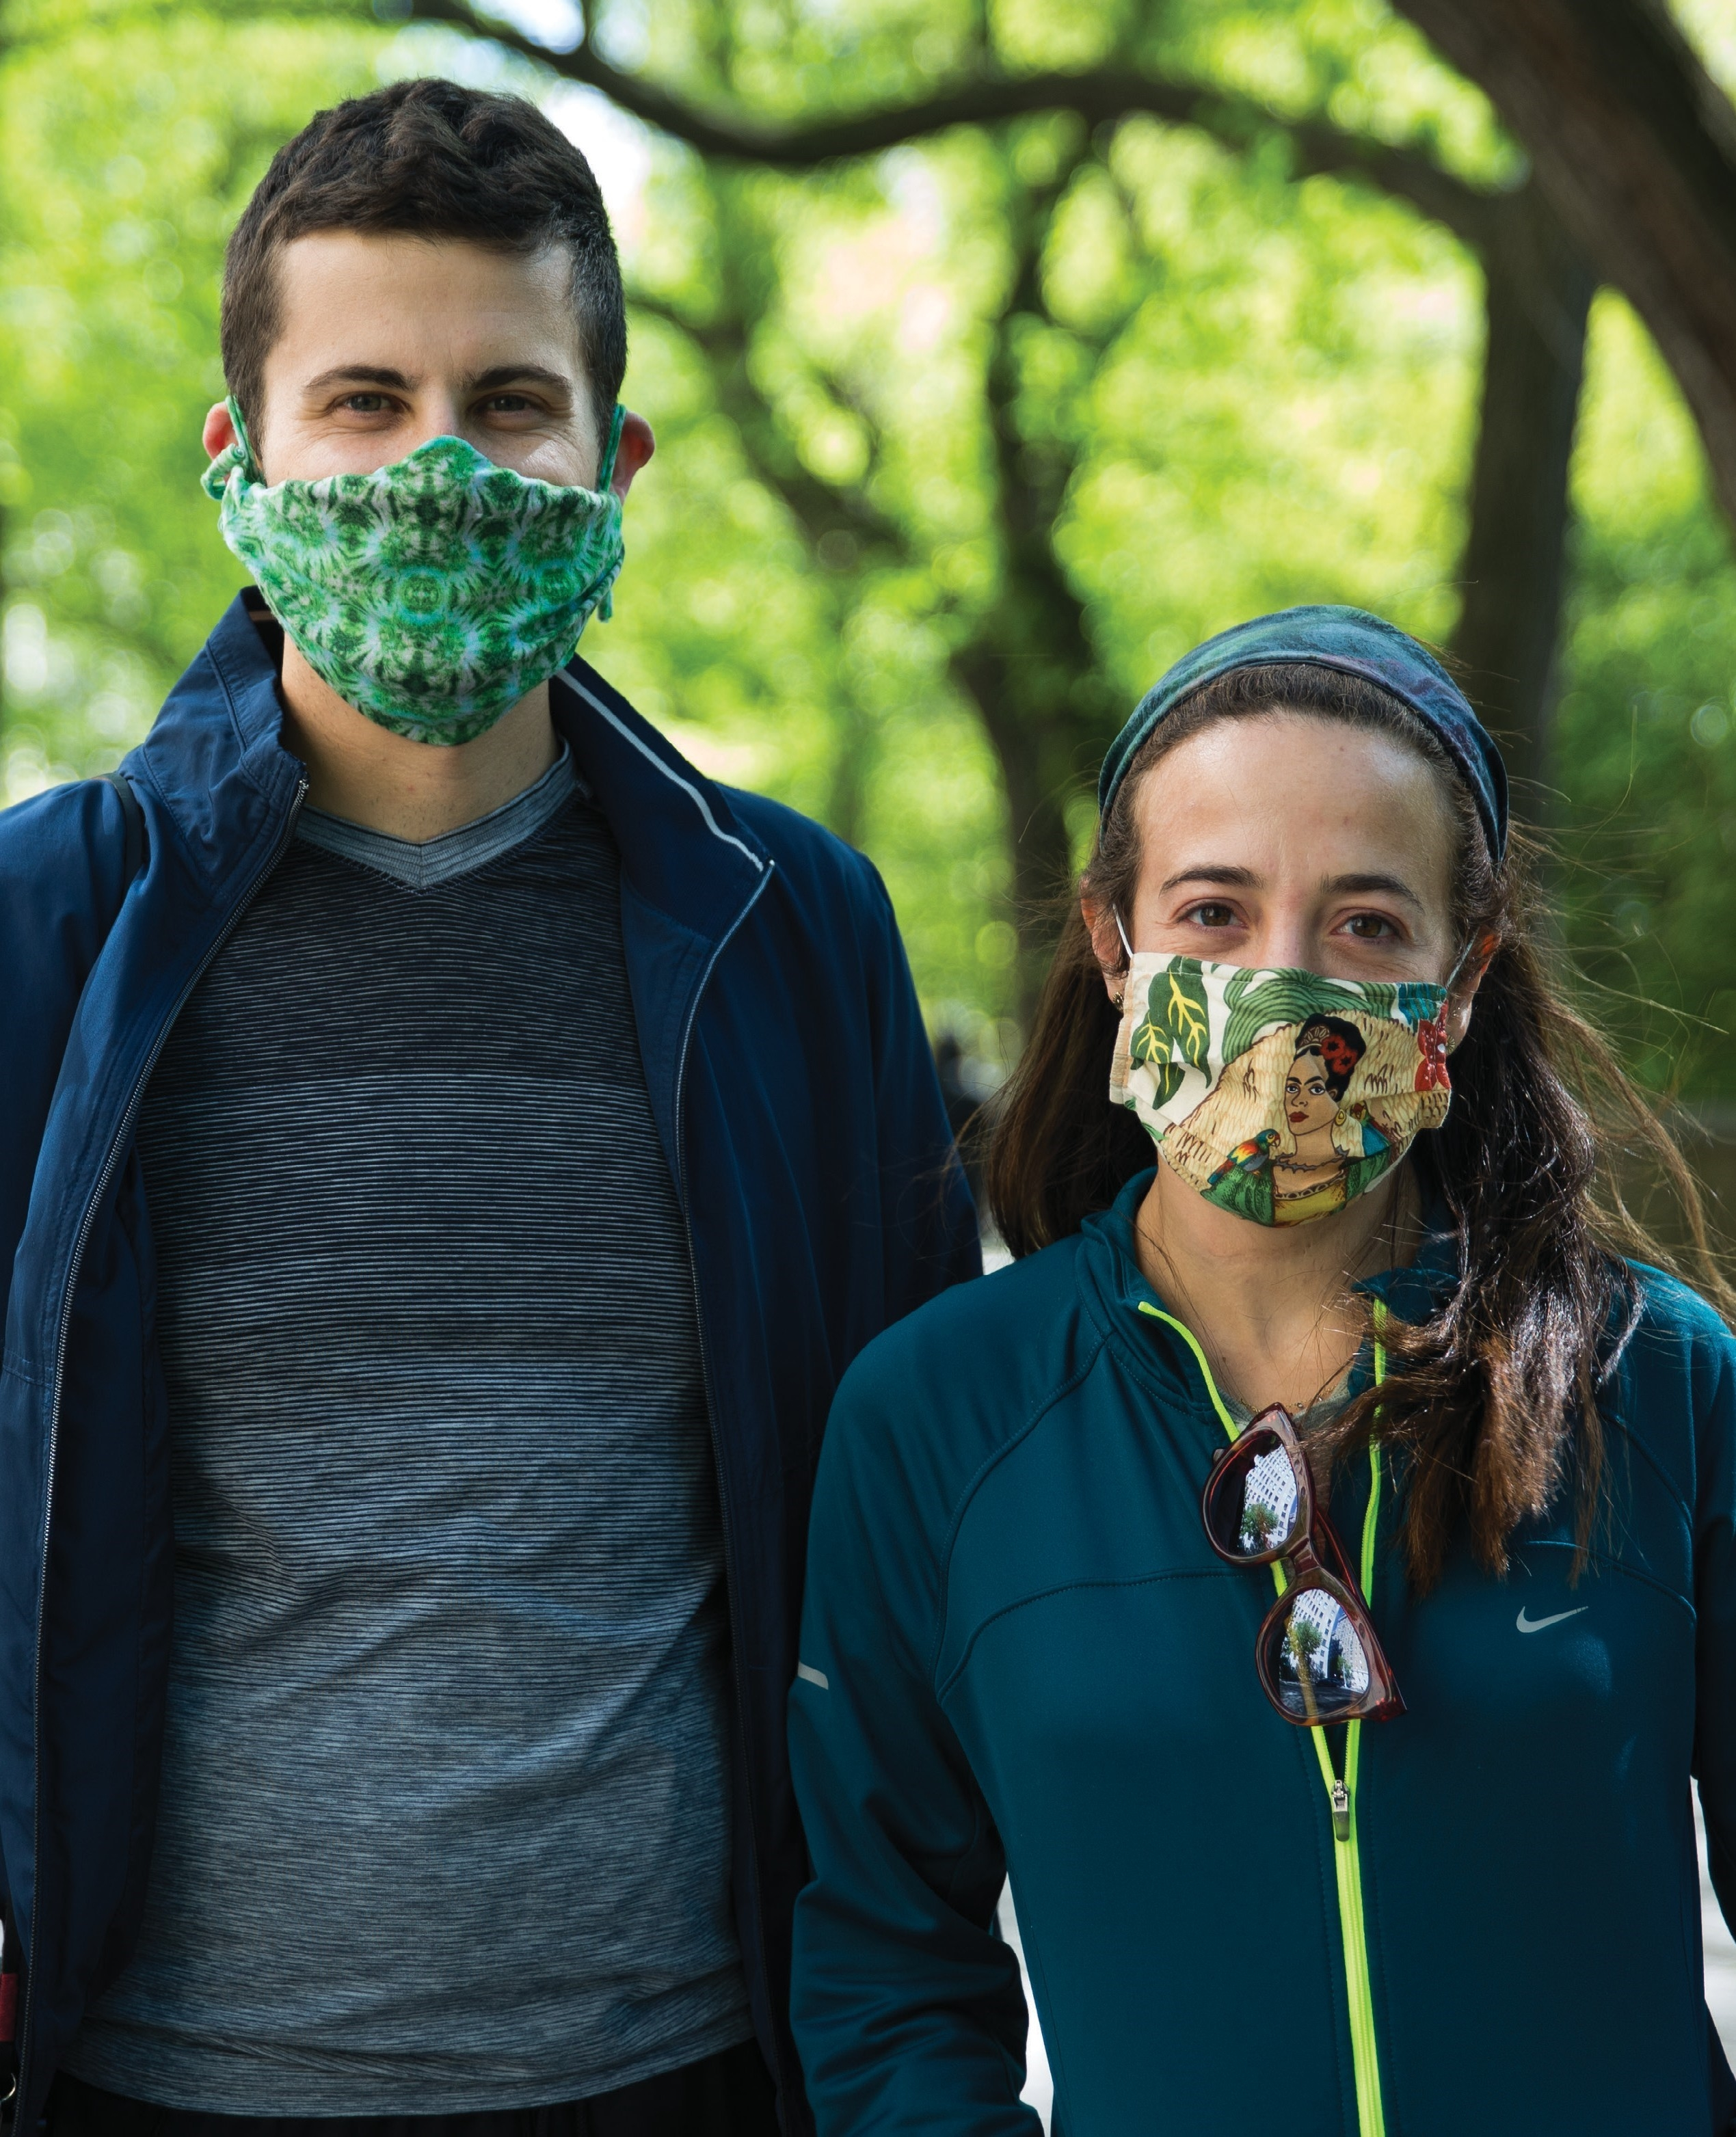 a man and woman posing with my mask